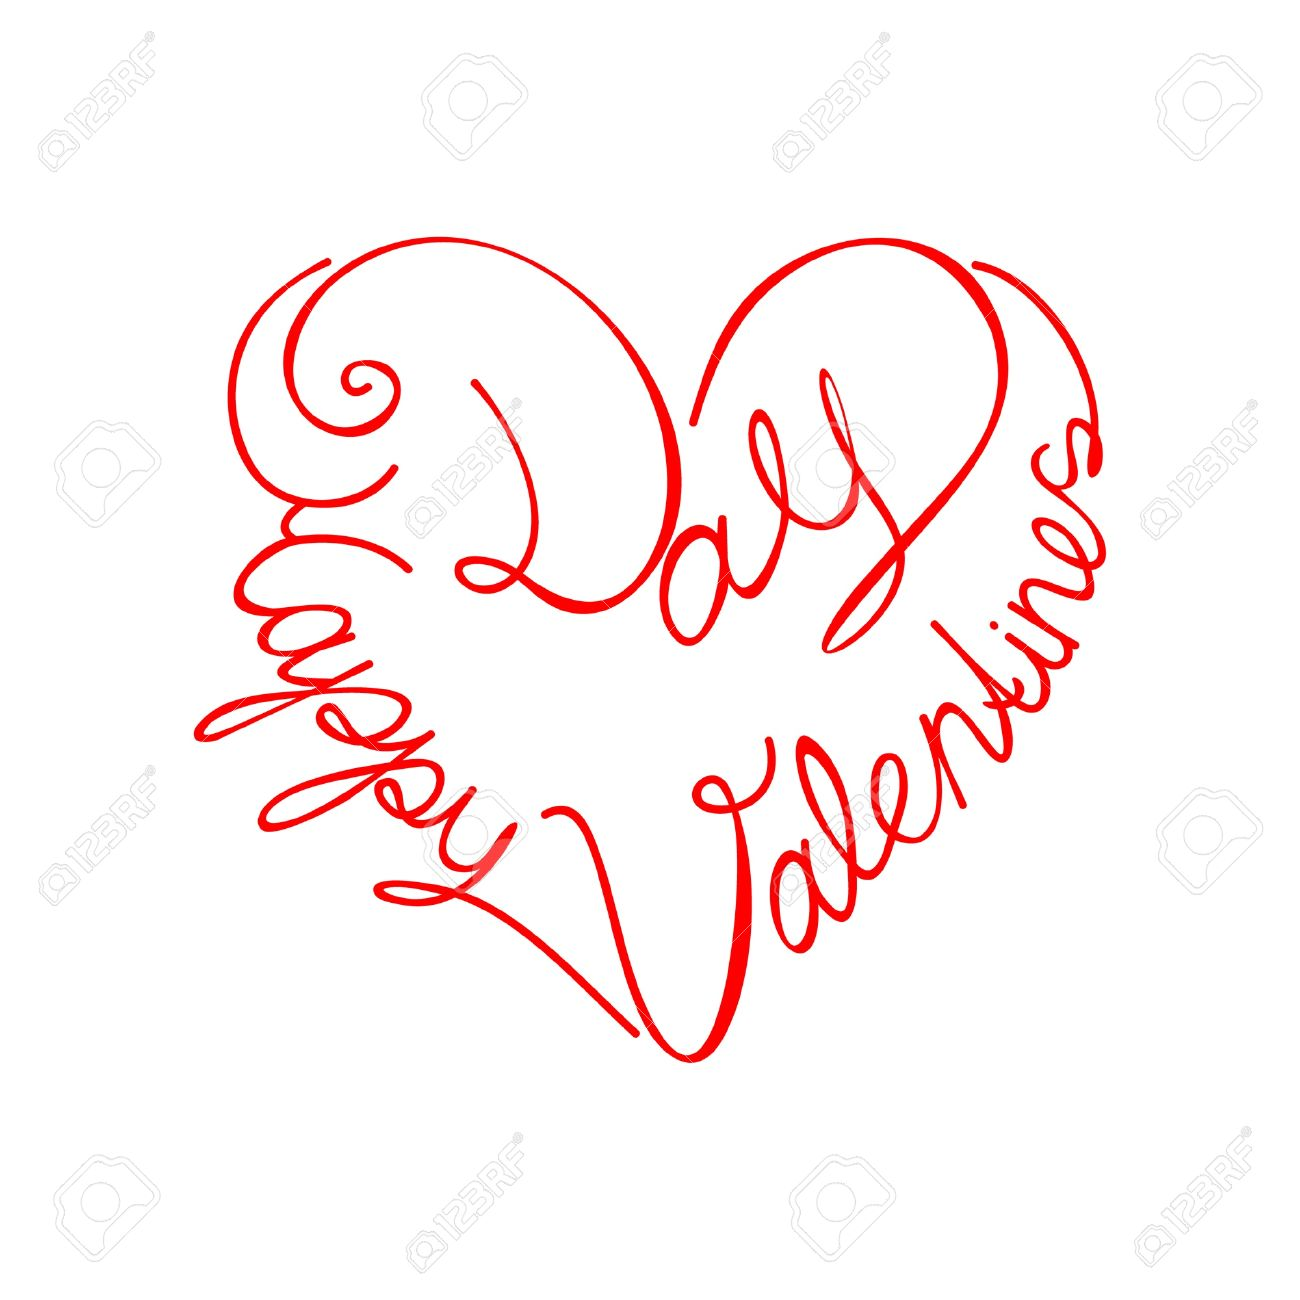 calligraphic text happy valentines day from the heart shape vector stock vector 9185547 - Happy Valentines Day Text